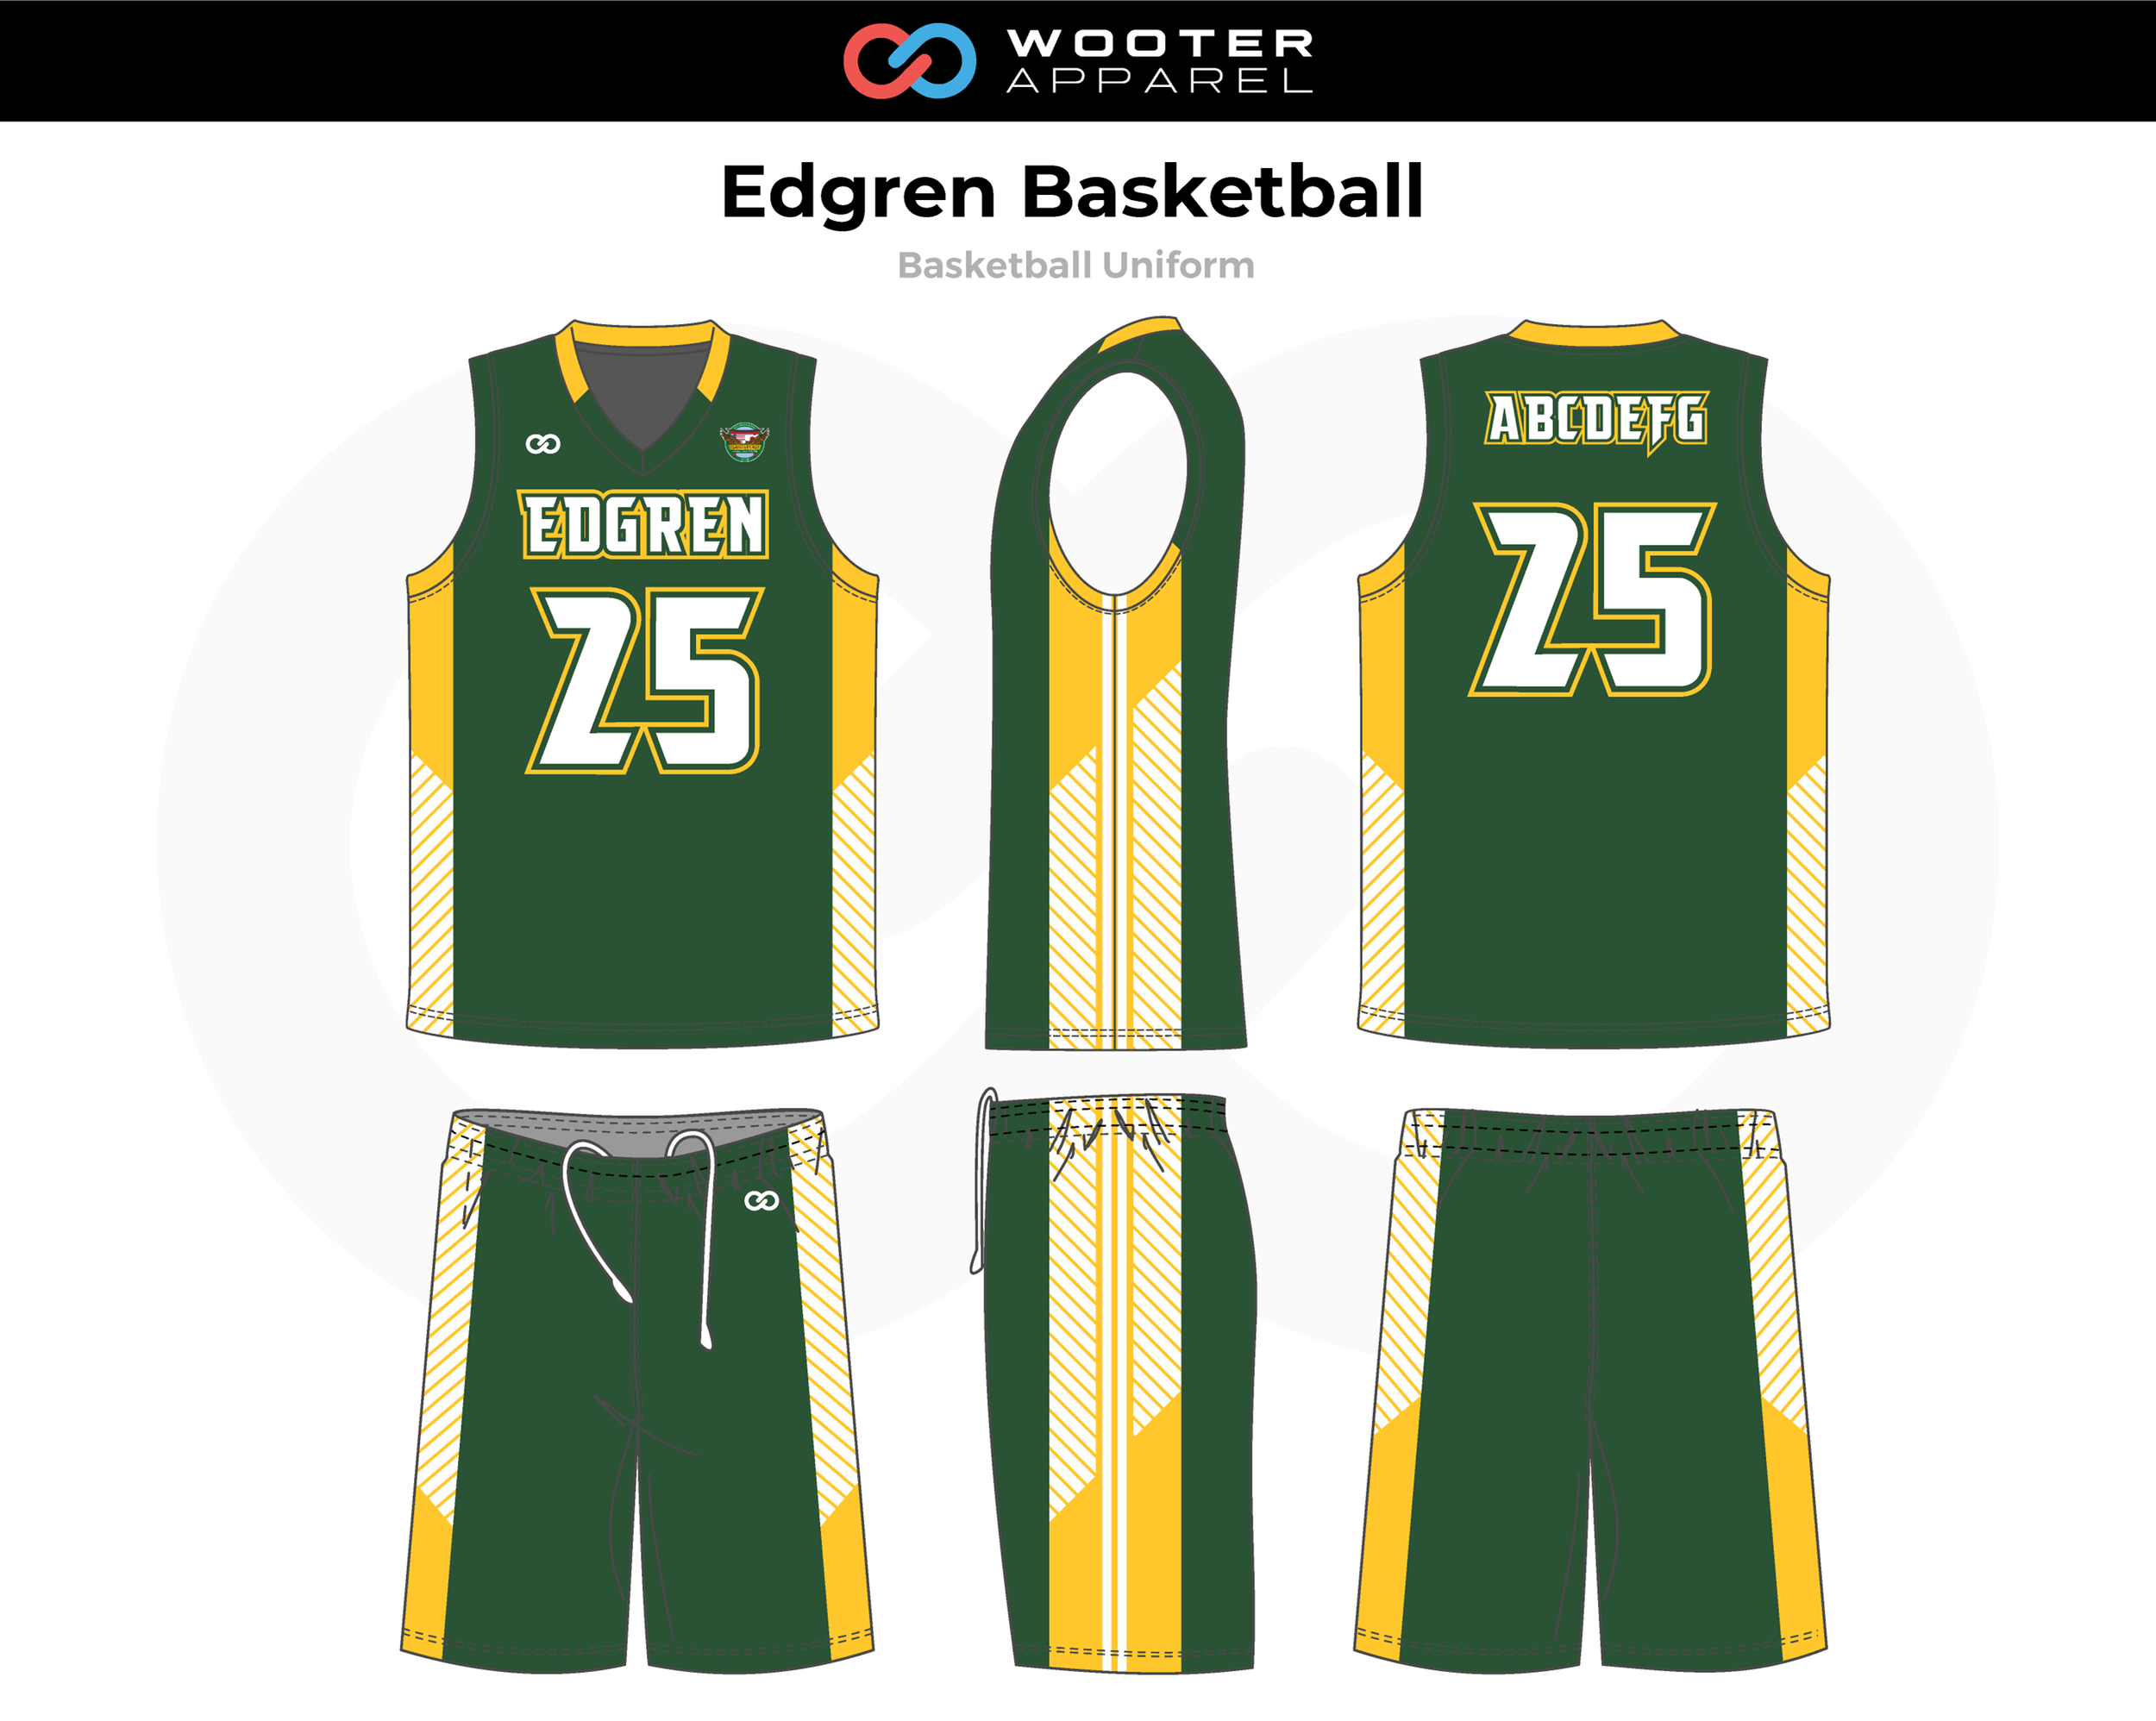 EDGREN Green White Yellow Basketball Uniform, Jersey and Shorts